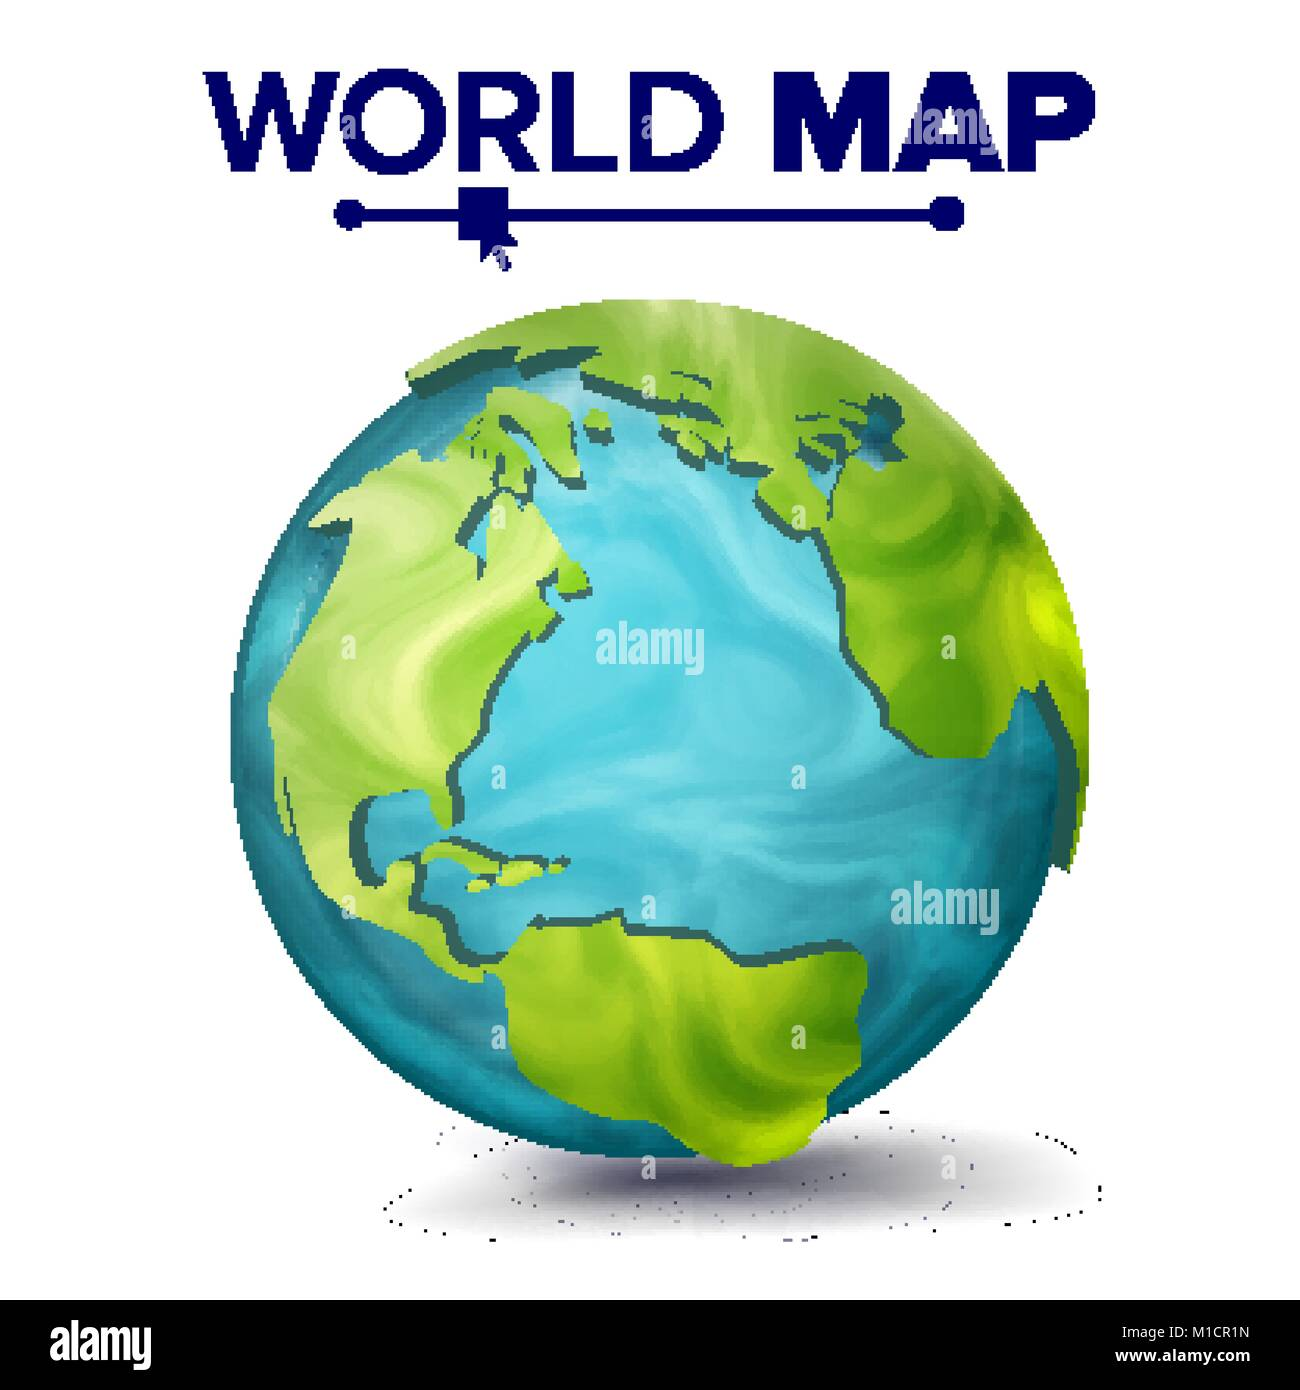 World map vector 3d planet sphere earth with continents north world map vector 3d planet sphere earth with continents north america south america africa europe isolated illustration gumiabroncs Choice Image